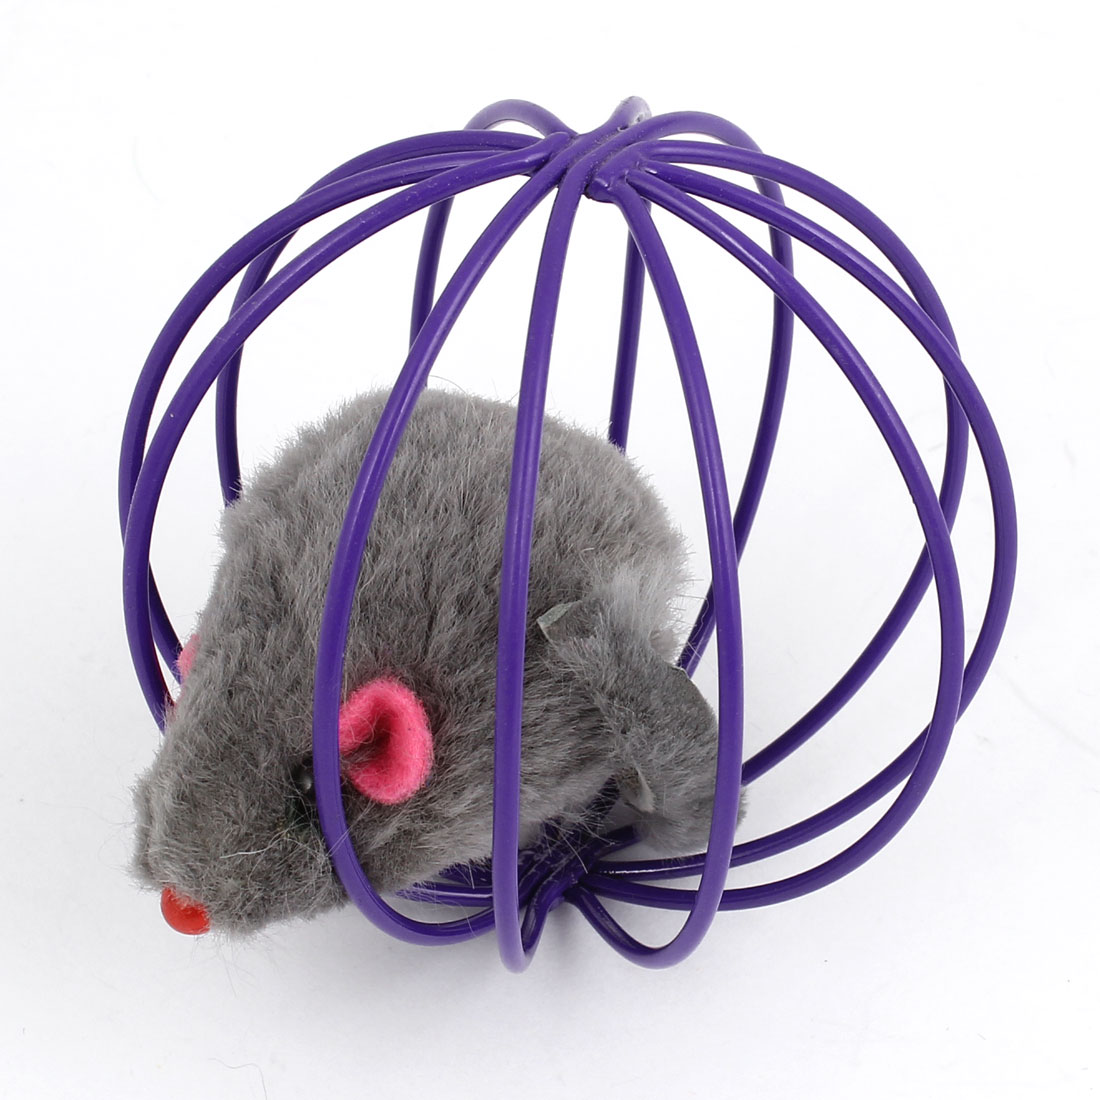 Gray False Mouse Rat In Purple Metal Ball Shape Cage Pet Toy for Dog Cat Playing